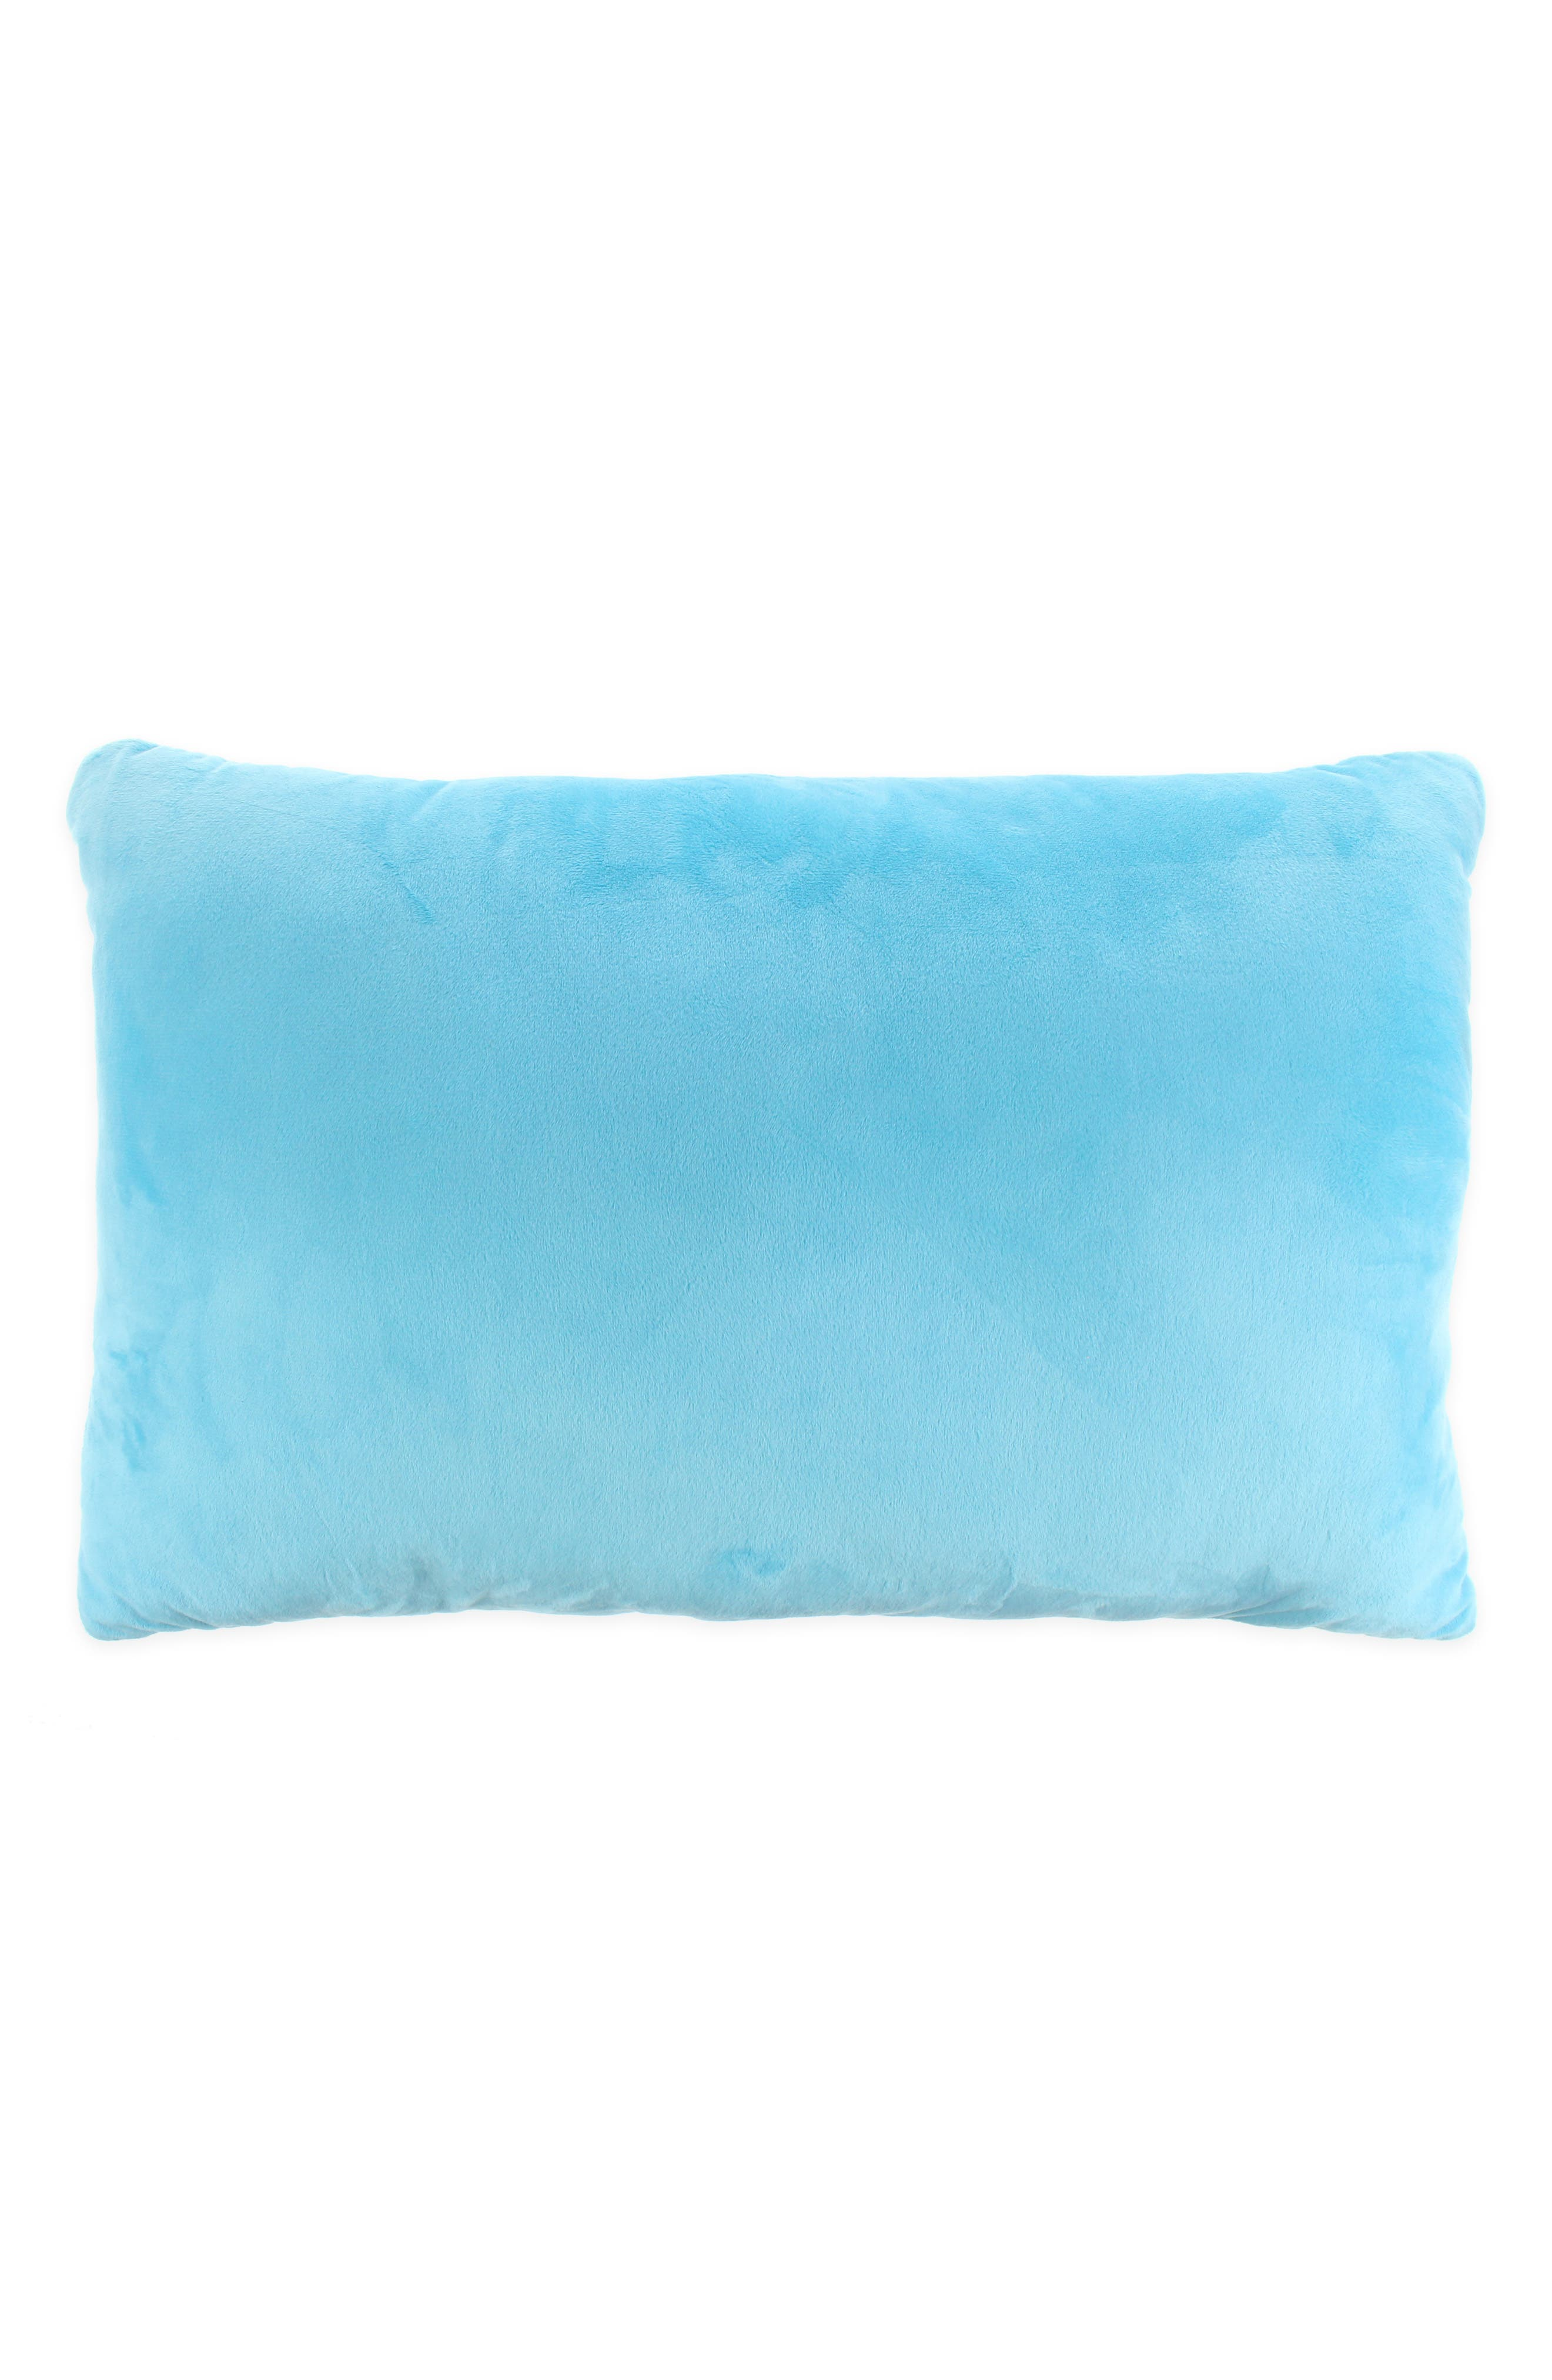 Narwhal Throw Pillow,                             Alternate thumbnail 2, color,                             BLUE COMBO